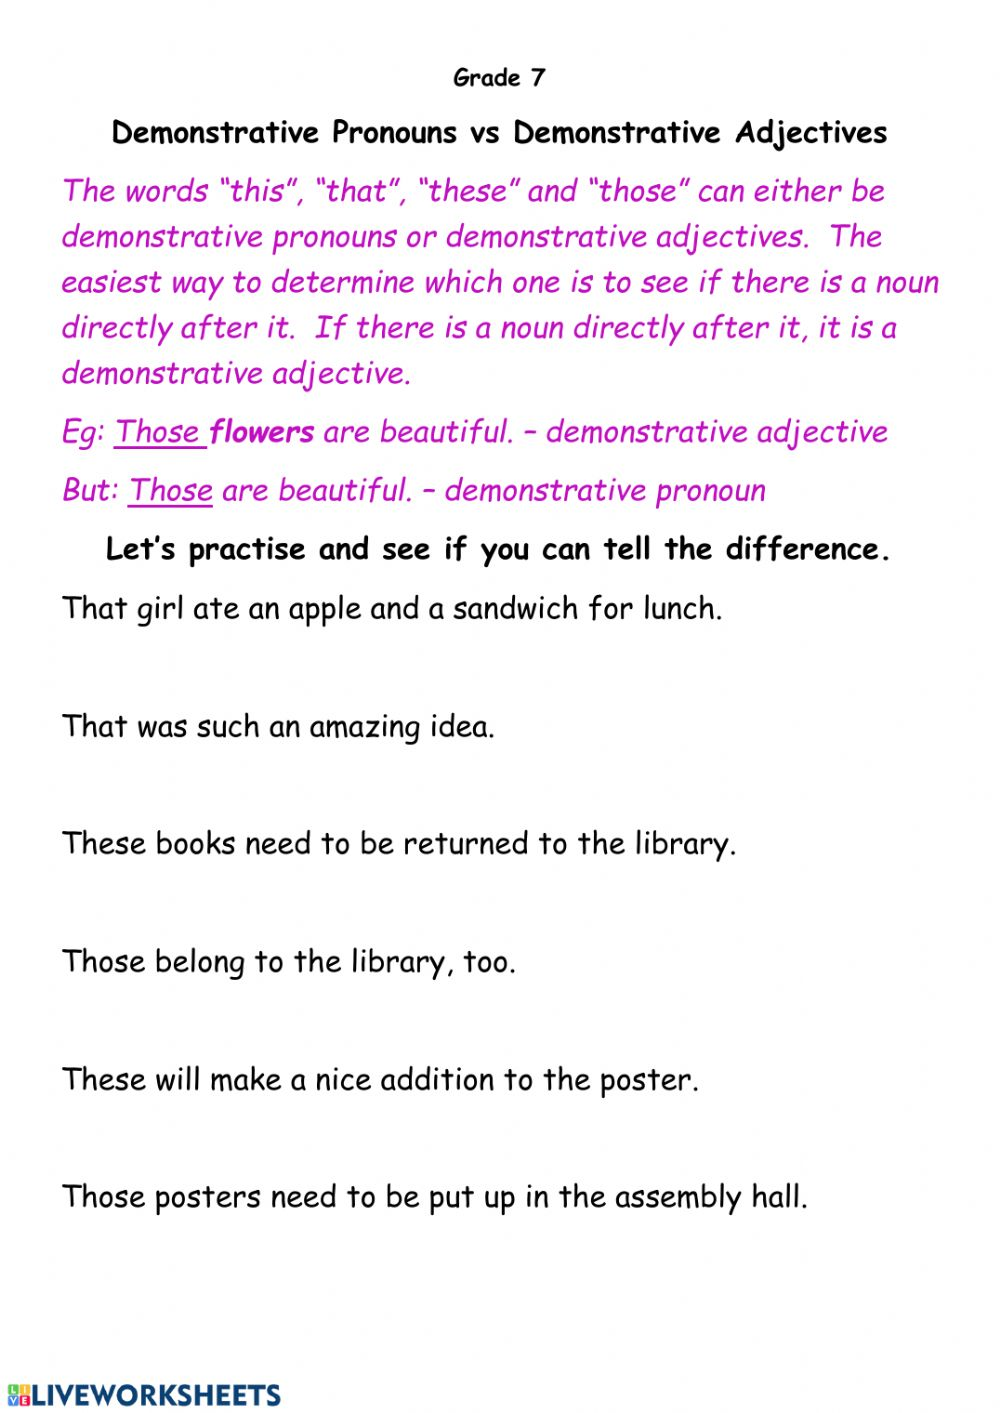 medium resolution of Demonstrative Pronouns and Adjectives worksheet